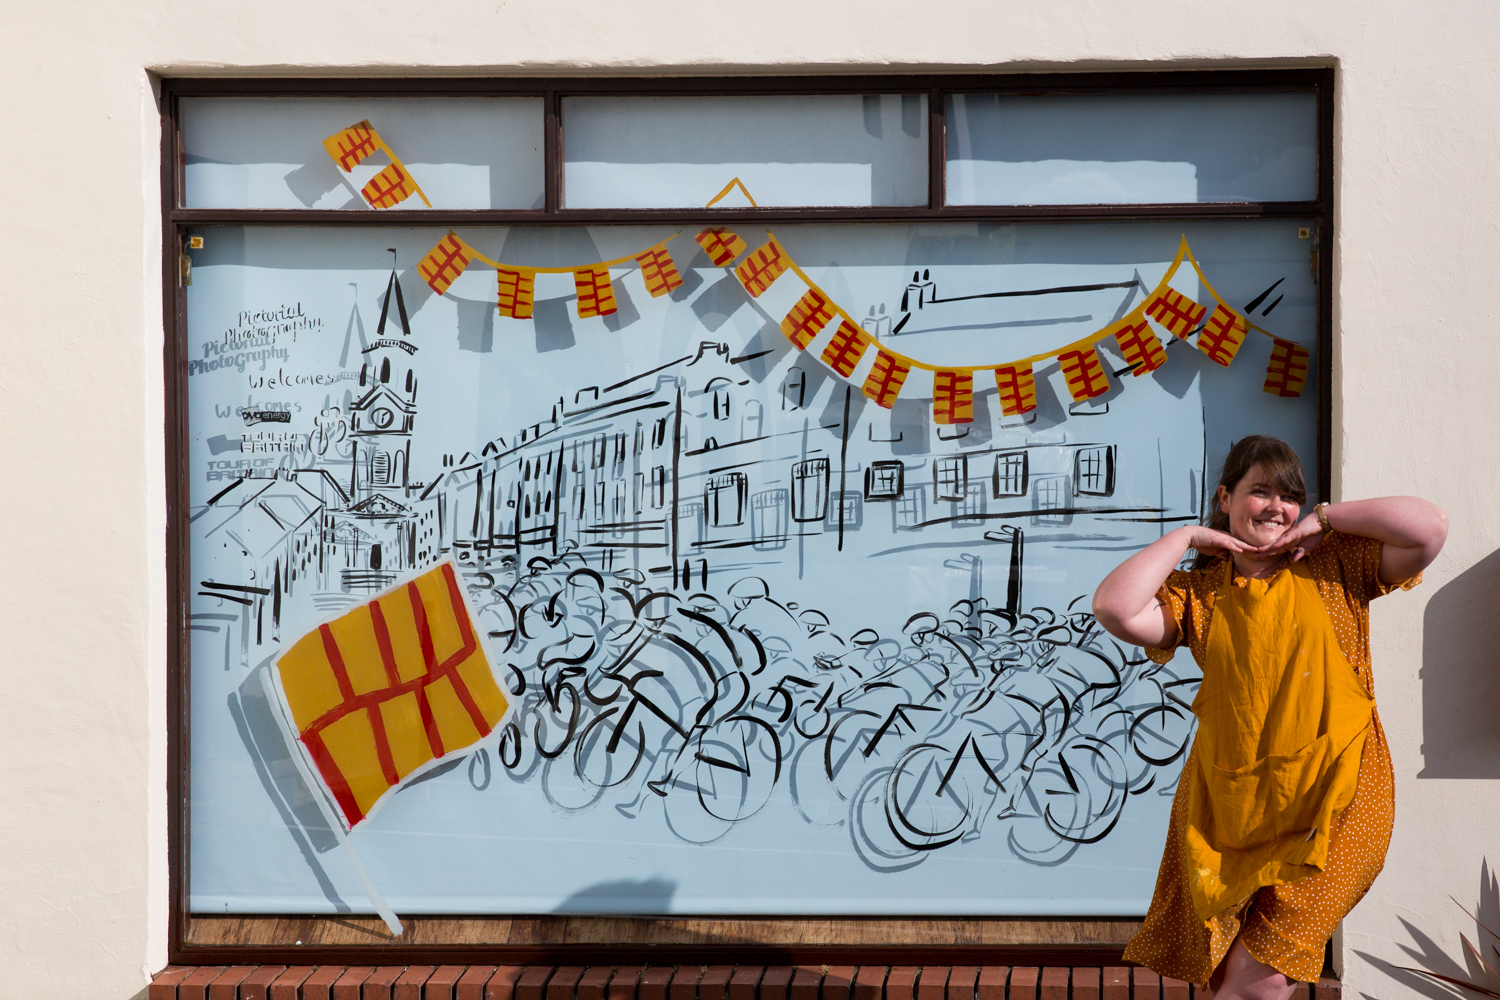 Katie_Draws_Pictorial_Photography_Chappell_Tour_of_Britian_window-painting-live-illustration-photography-graphic-mural-presentation-H45A6317.jpg